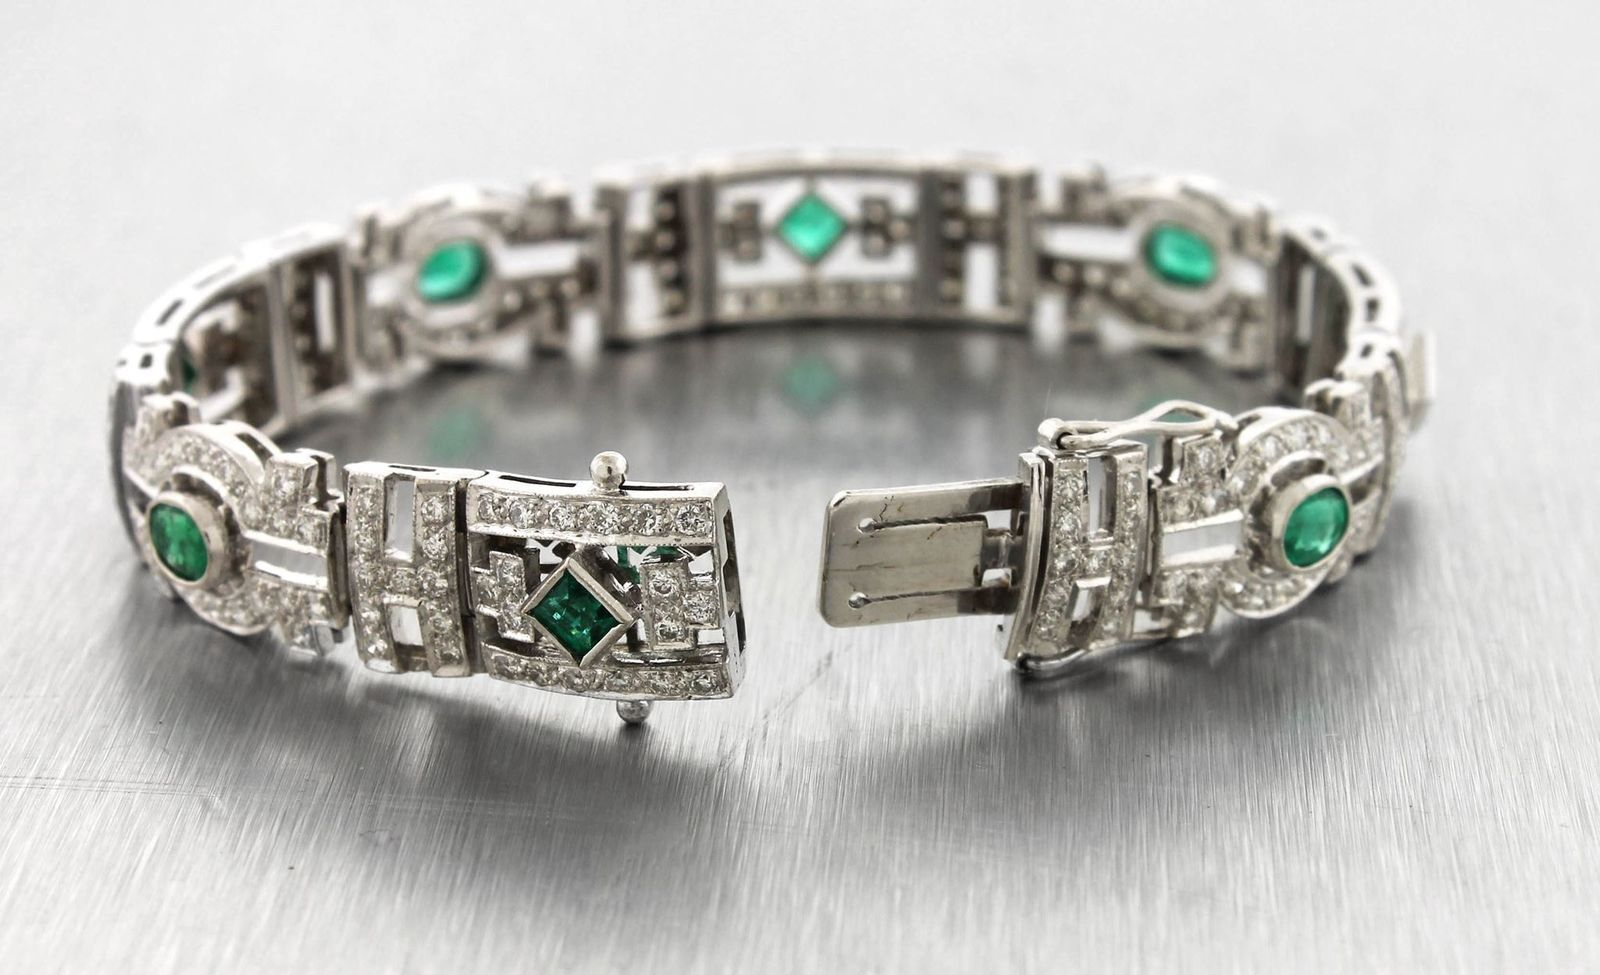 Ladies Vintage Art Deco 18K White Gold 4.38ctw Diamond Emerald Bracelet